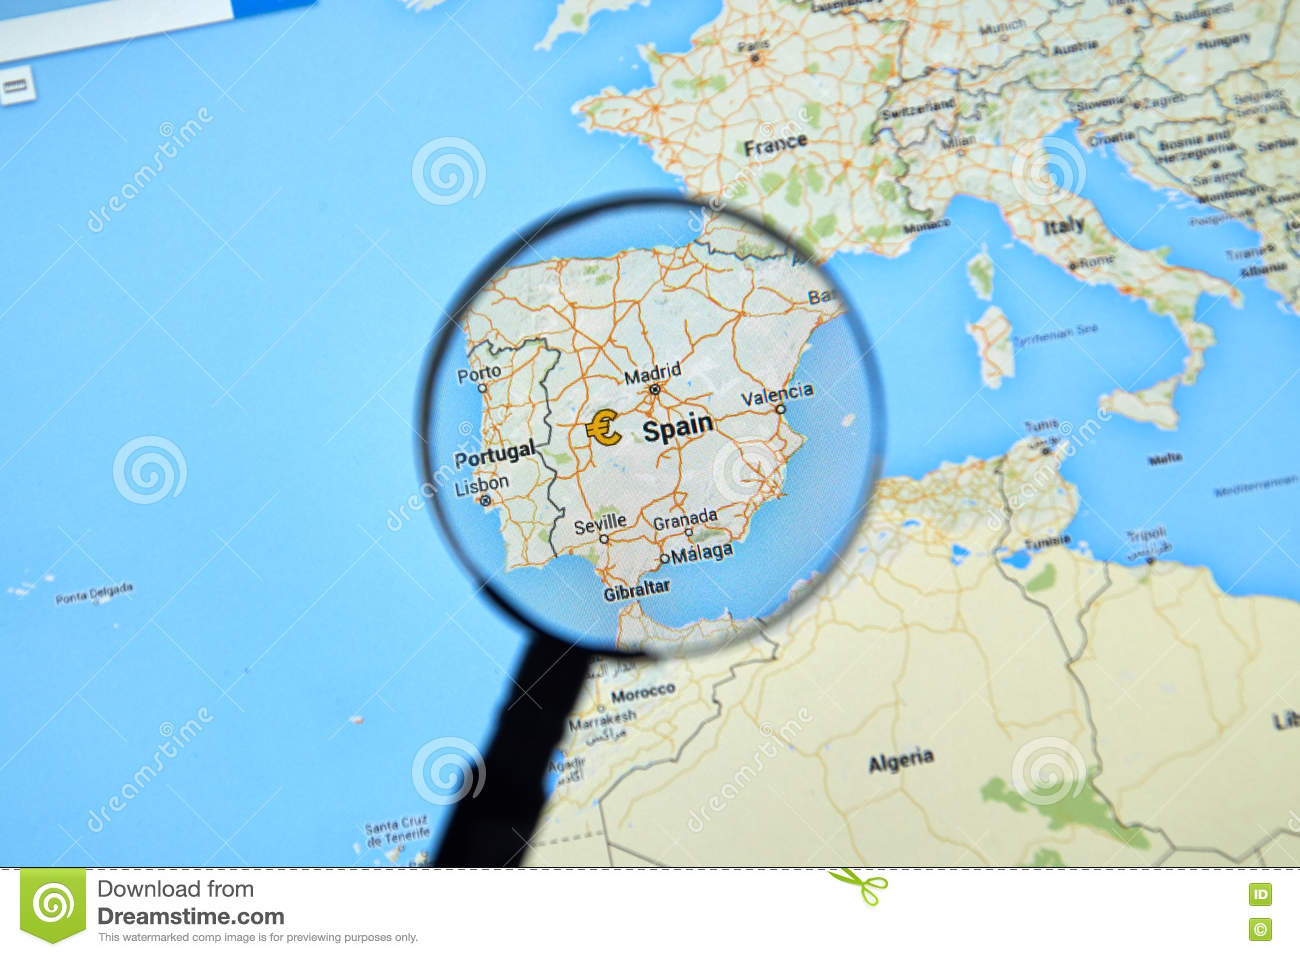 Spain On Google Maps Editorial Stock Photo Image Of City 73615653